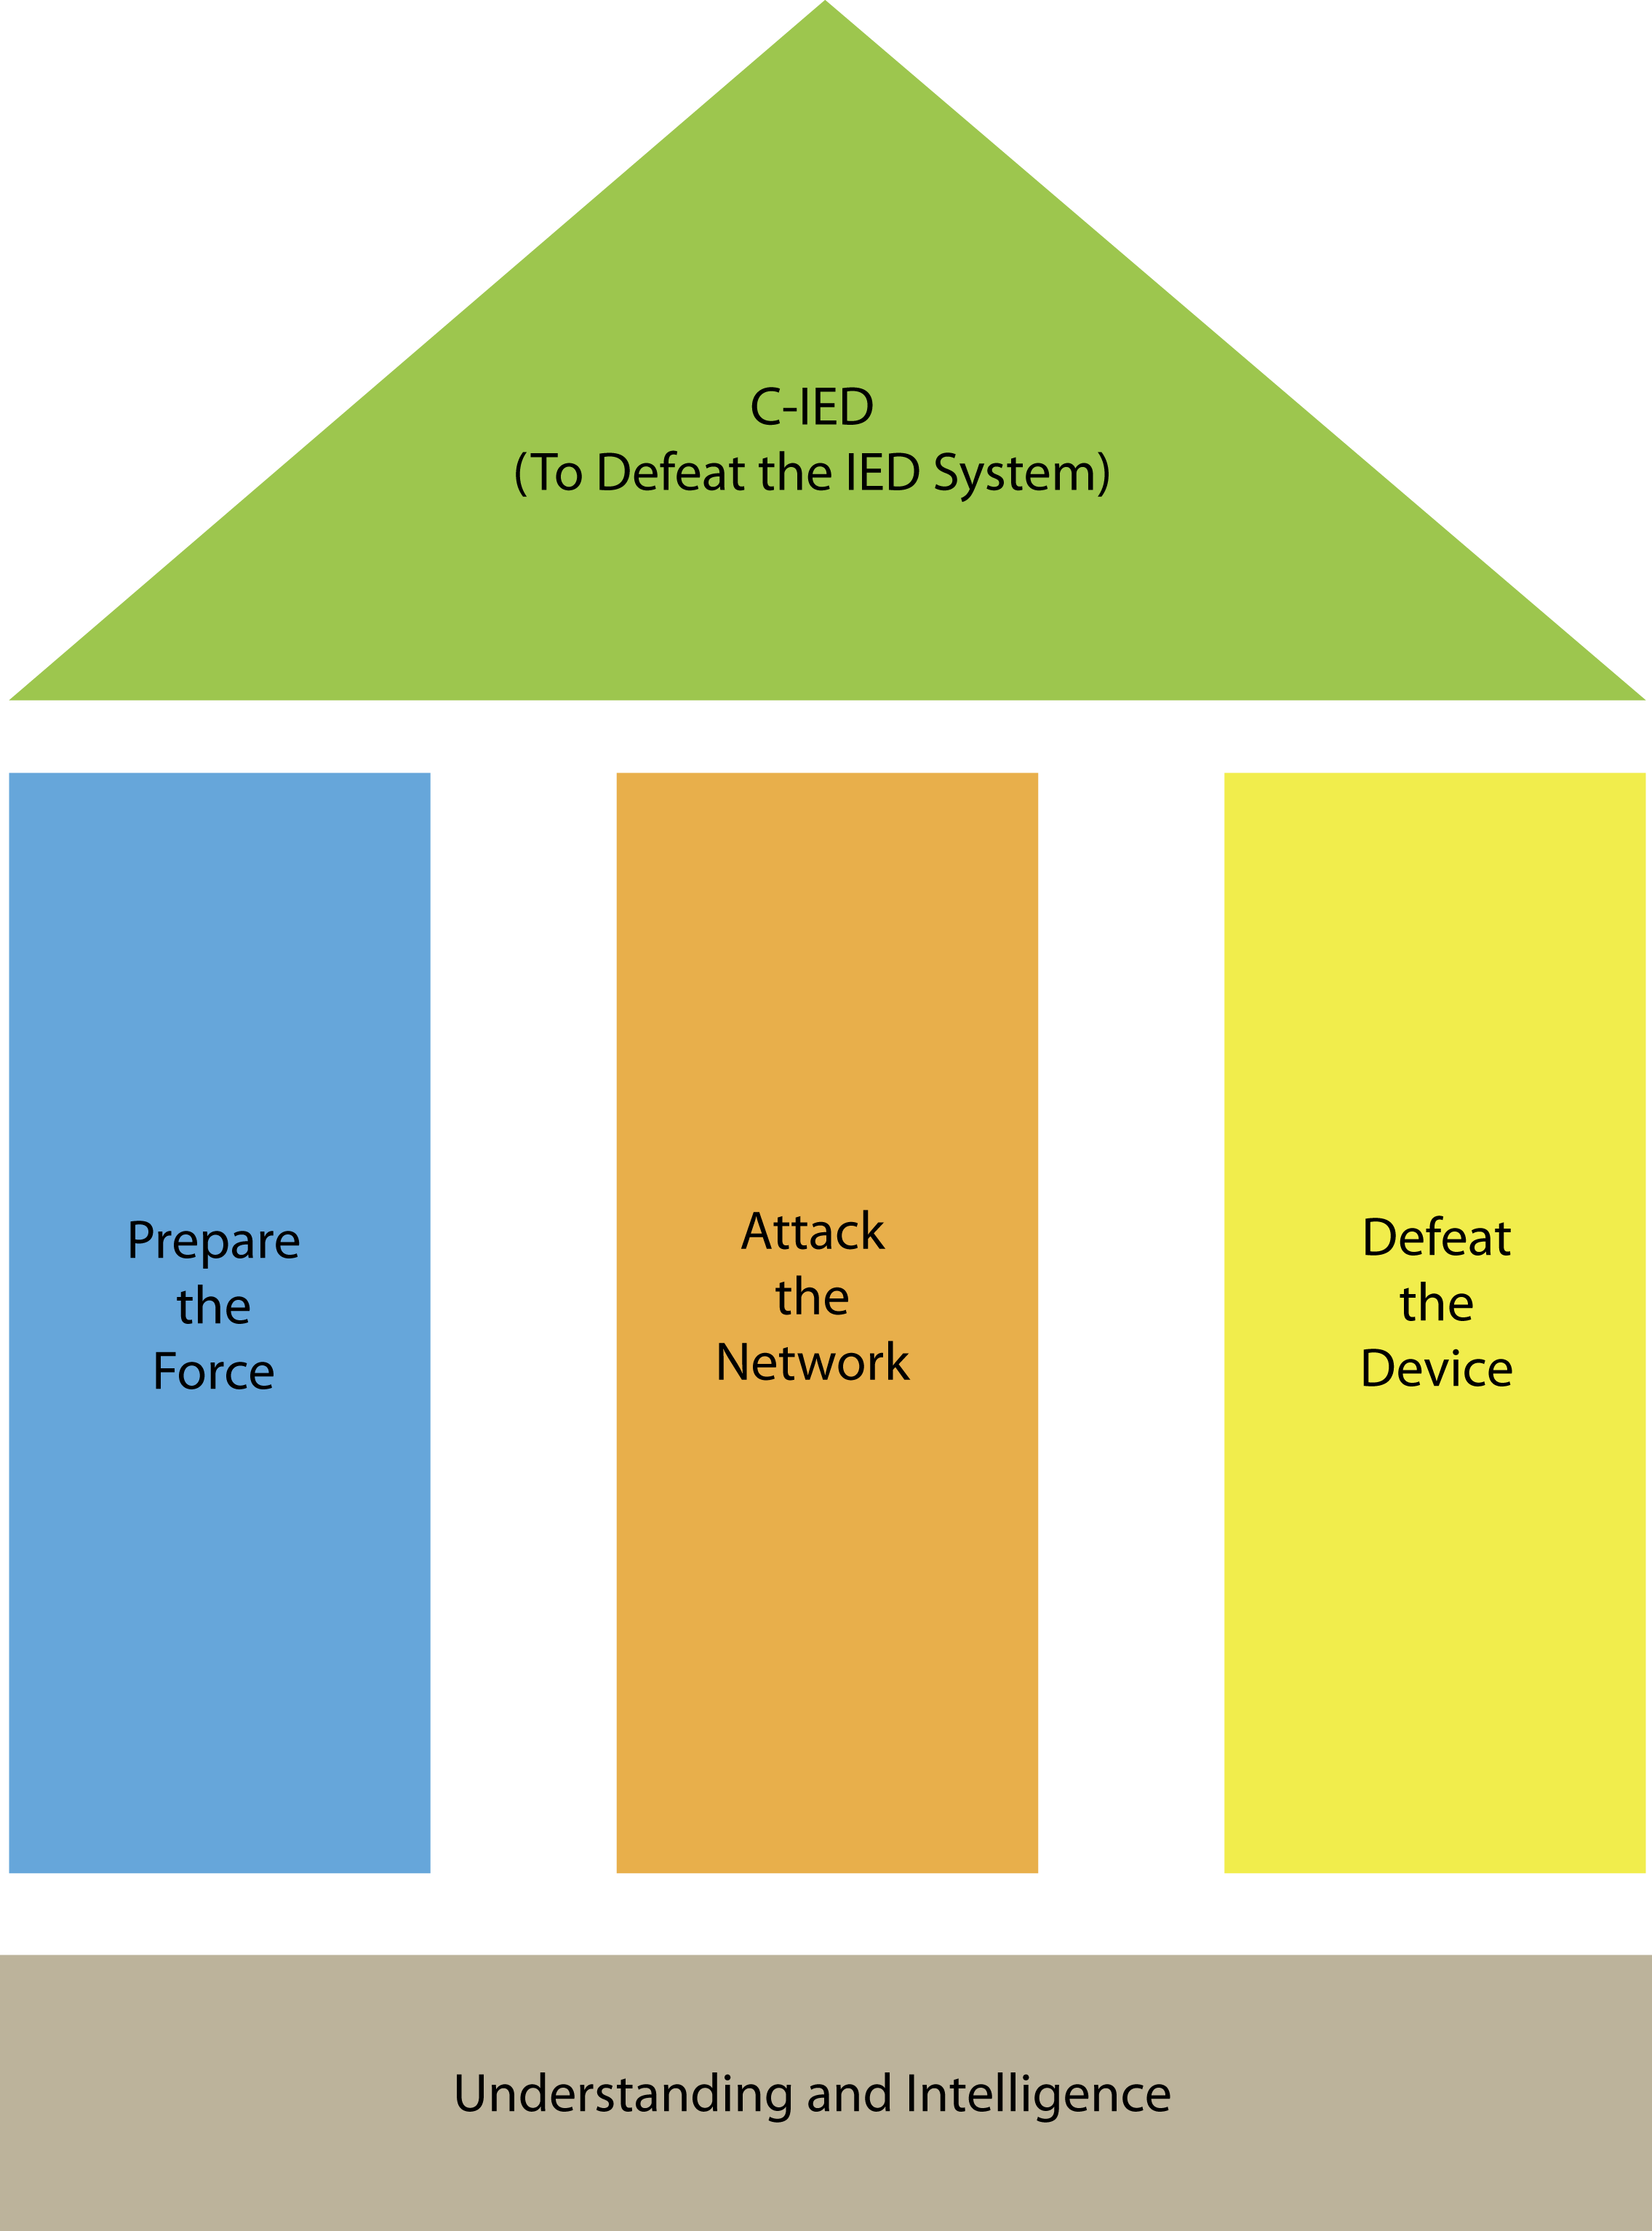 C-IED capability development and training from EWS